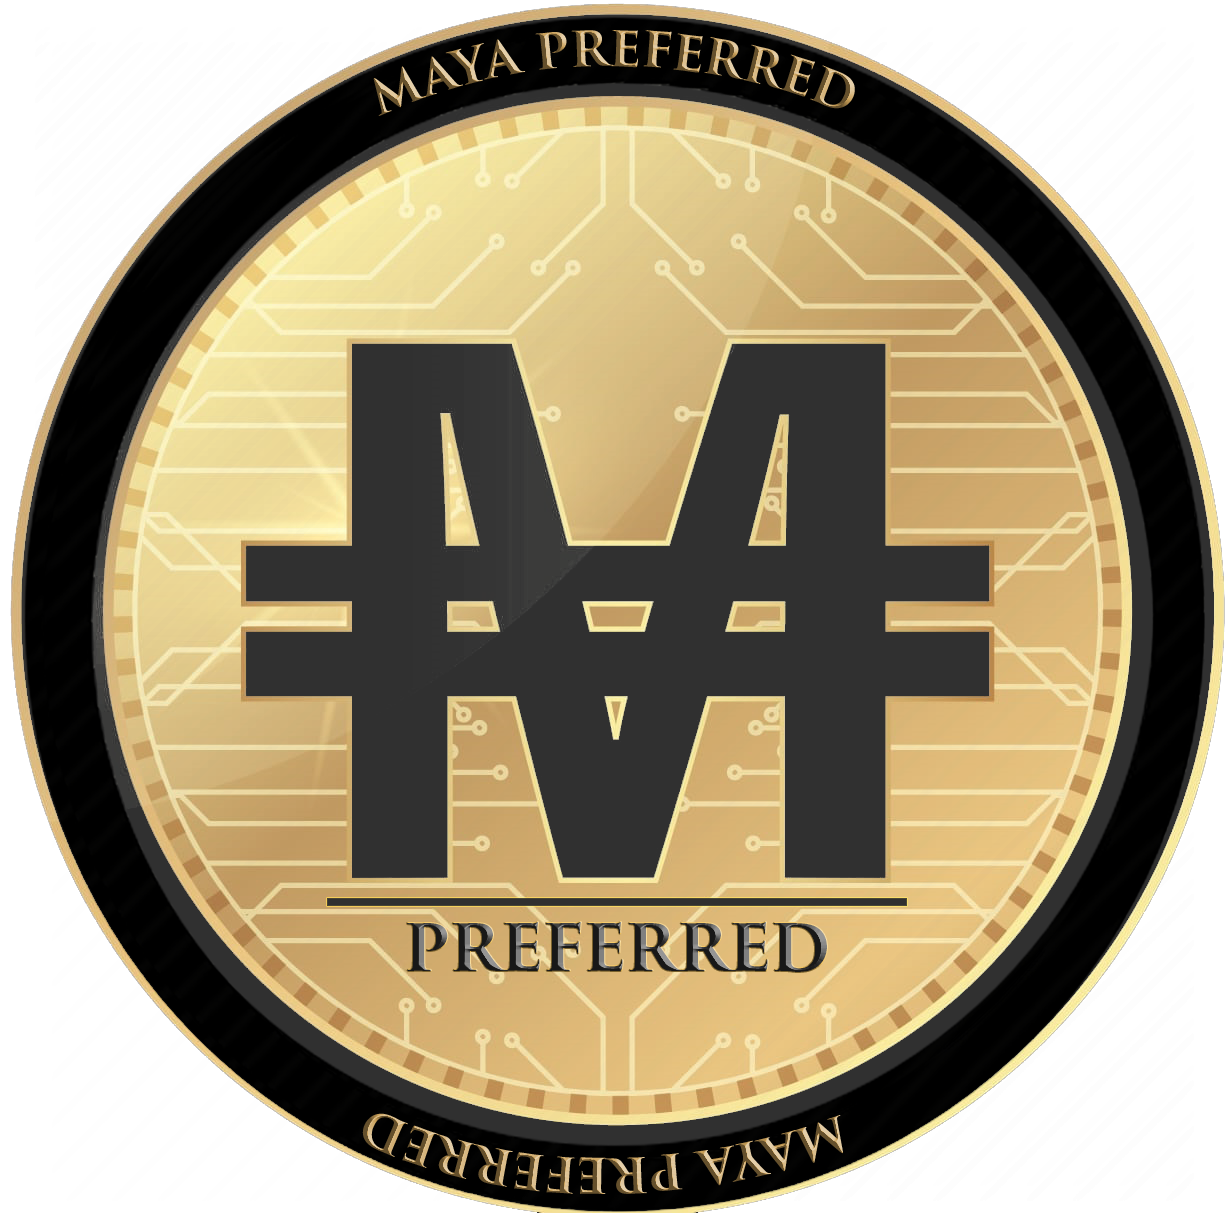 UK Financial Ltd. continues to expand its Board of Directors on the Maya Coin and Maya Preferred 223 projects